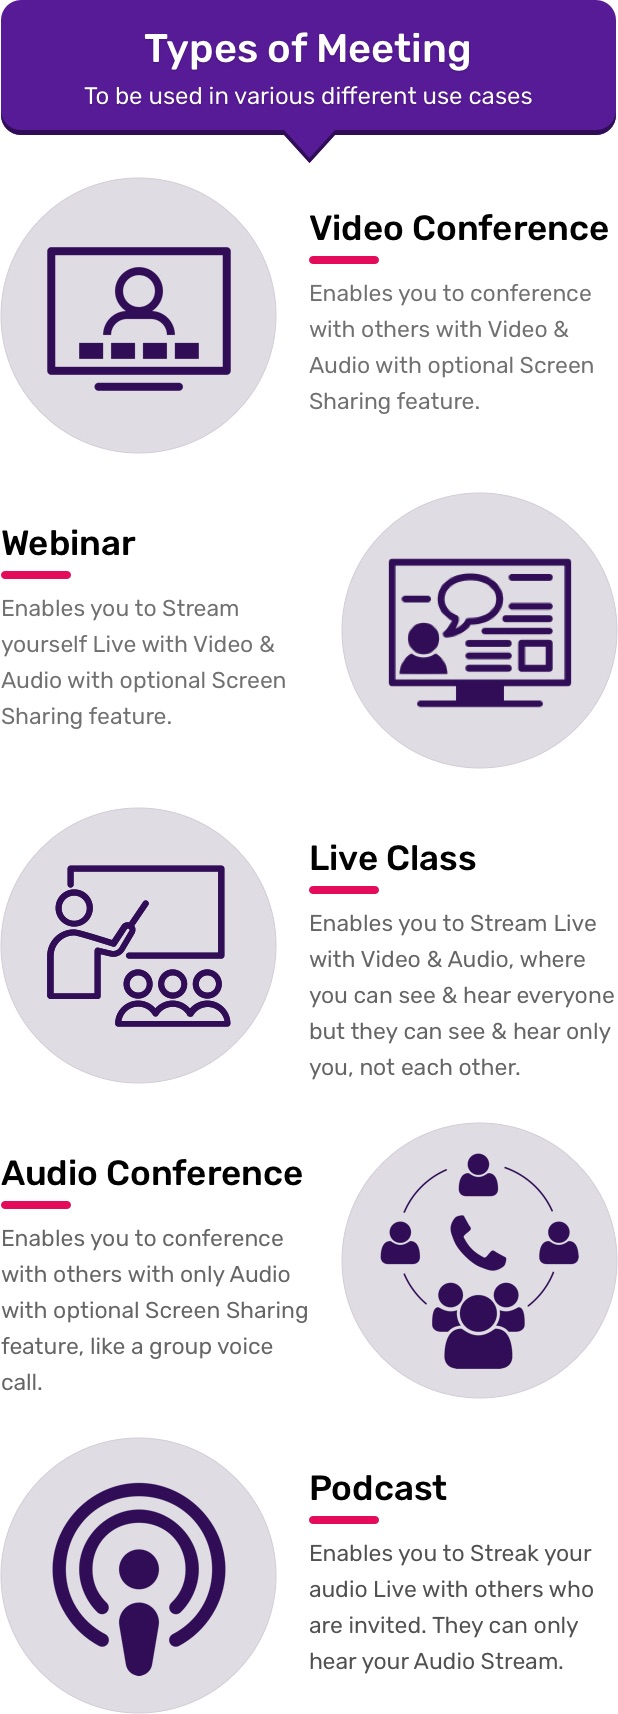 Connect - Types of Meetings - Video Conference, Webinar, Live Class, Audio Conference, Podcast